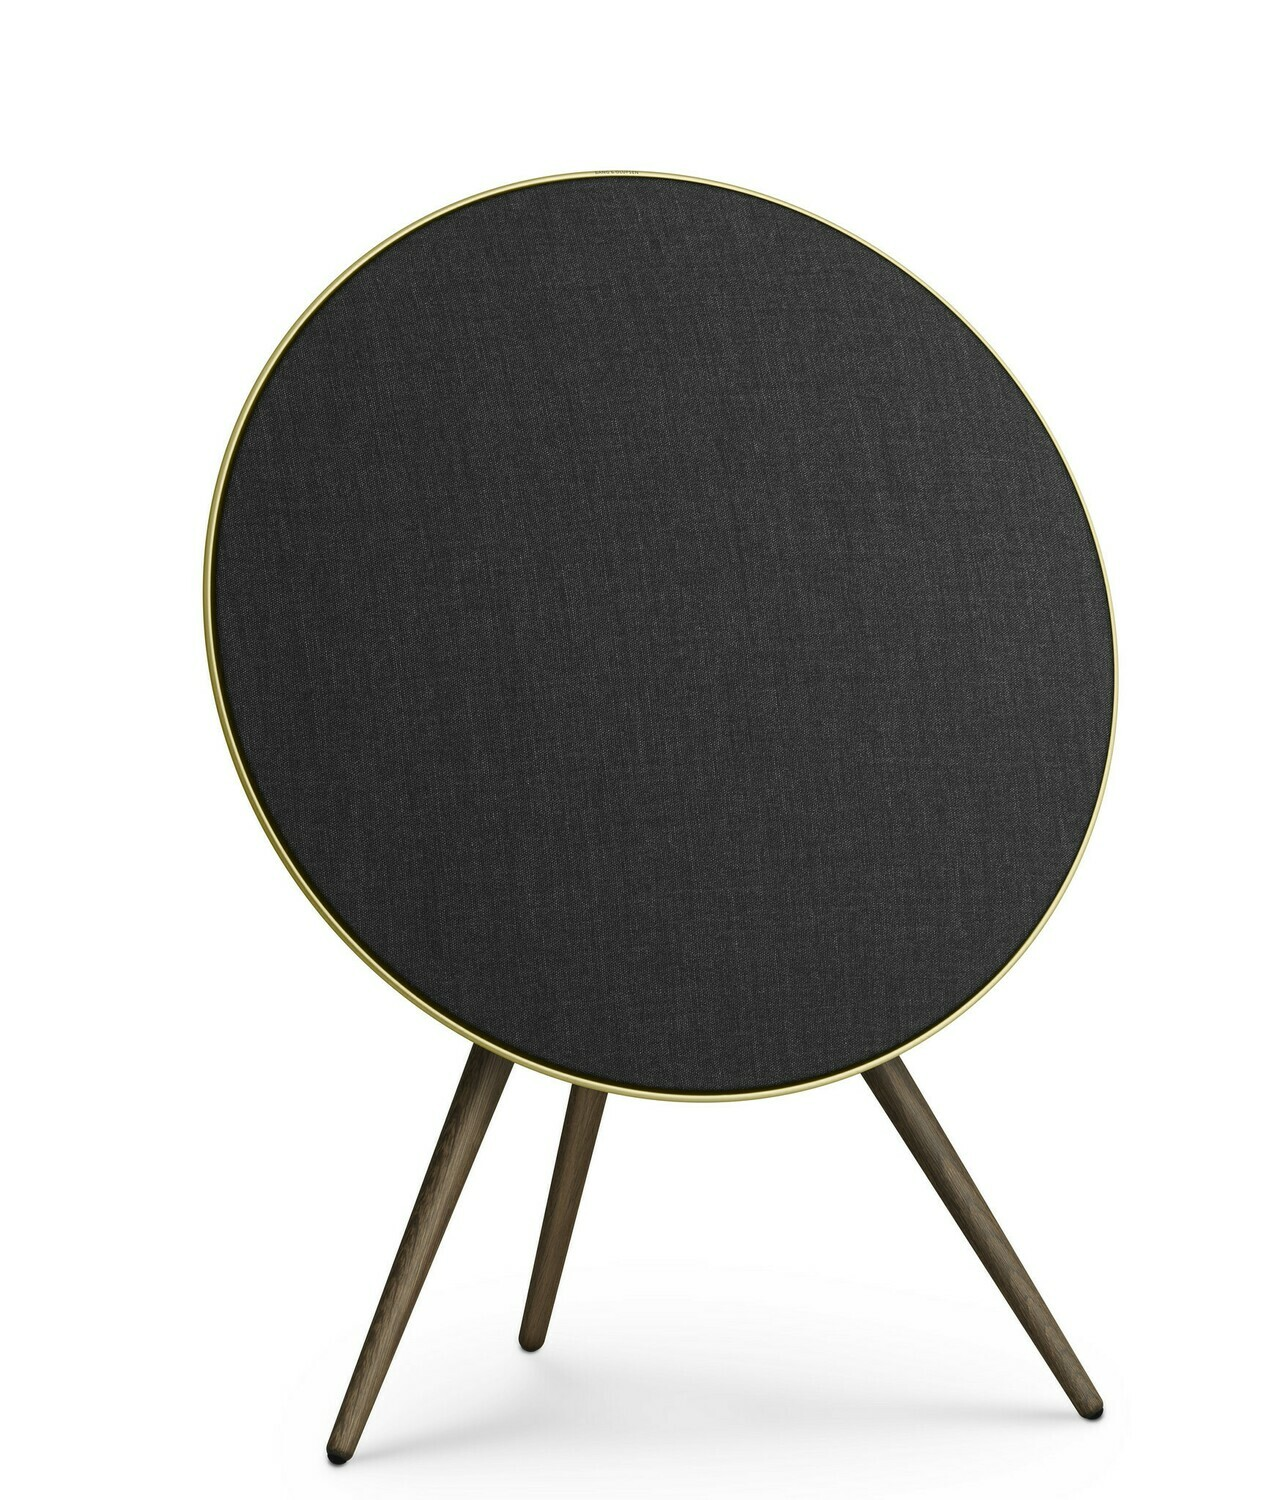 Beoplay A9 4th Generation mit Google Assistant, Brass Tone